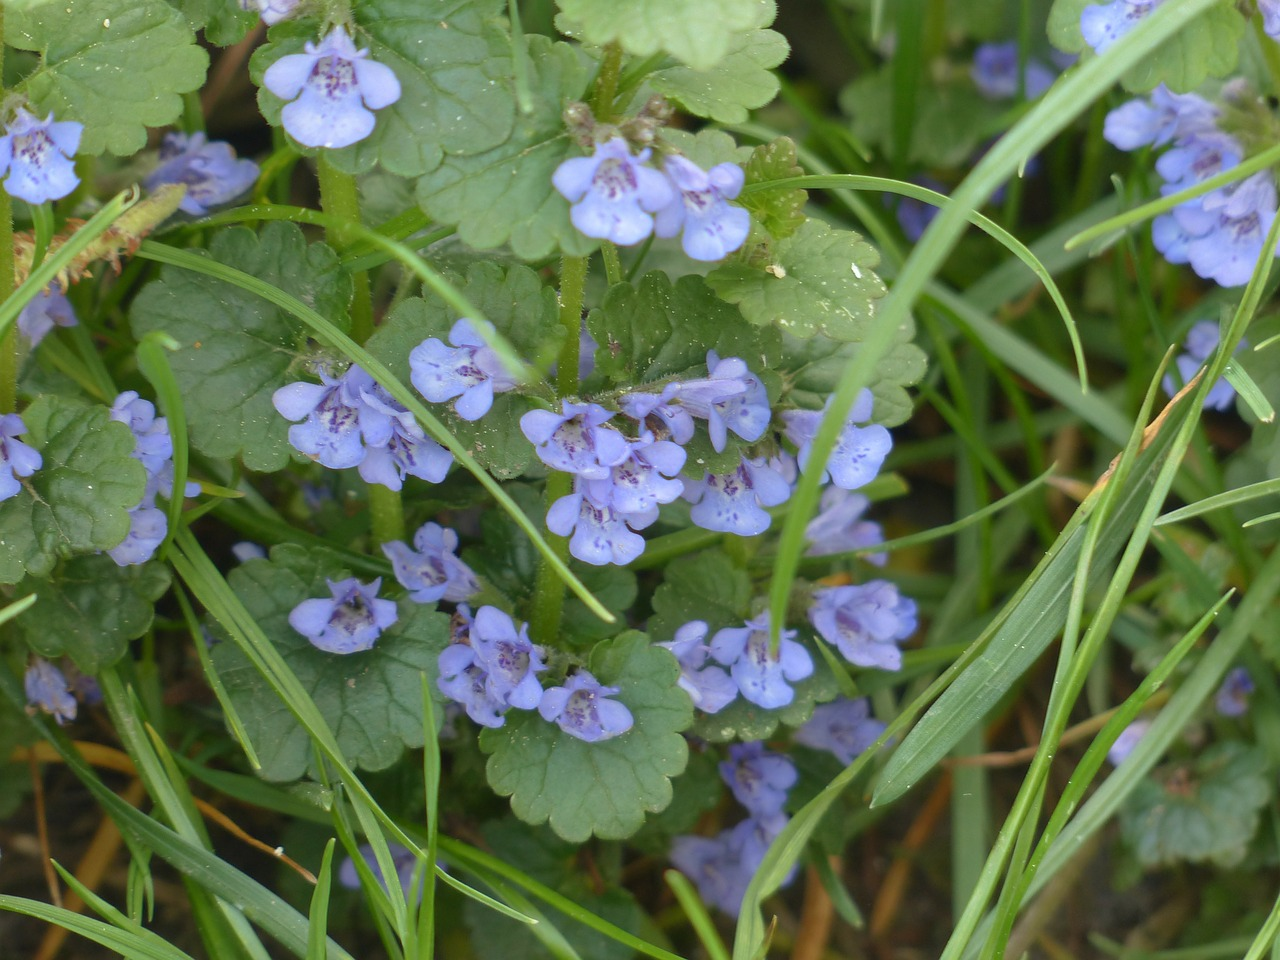 ground ivy blooming from grass